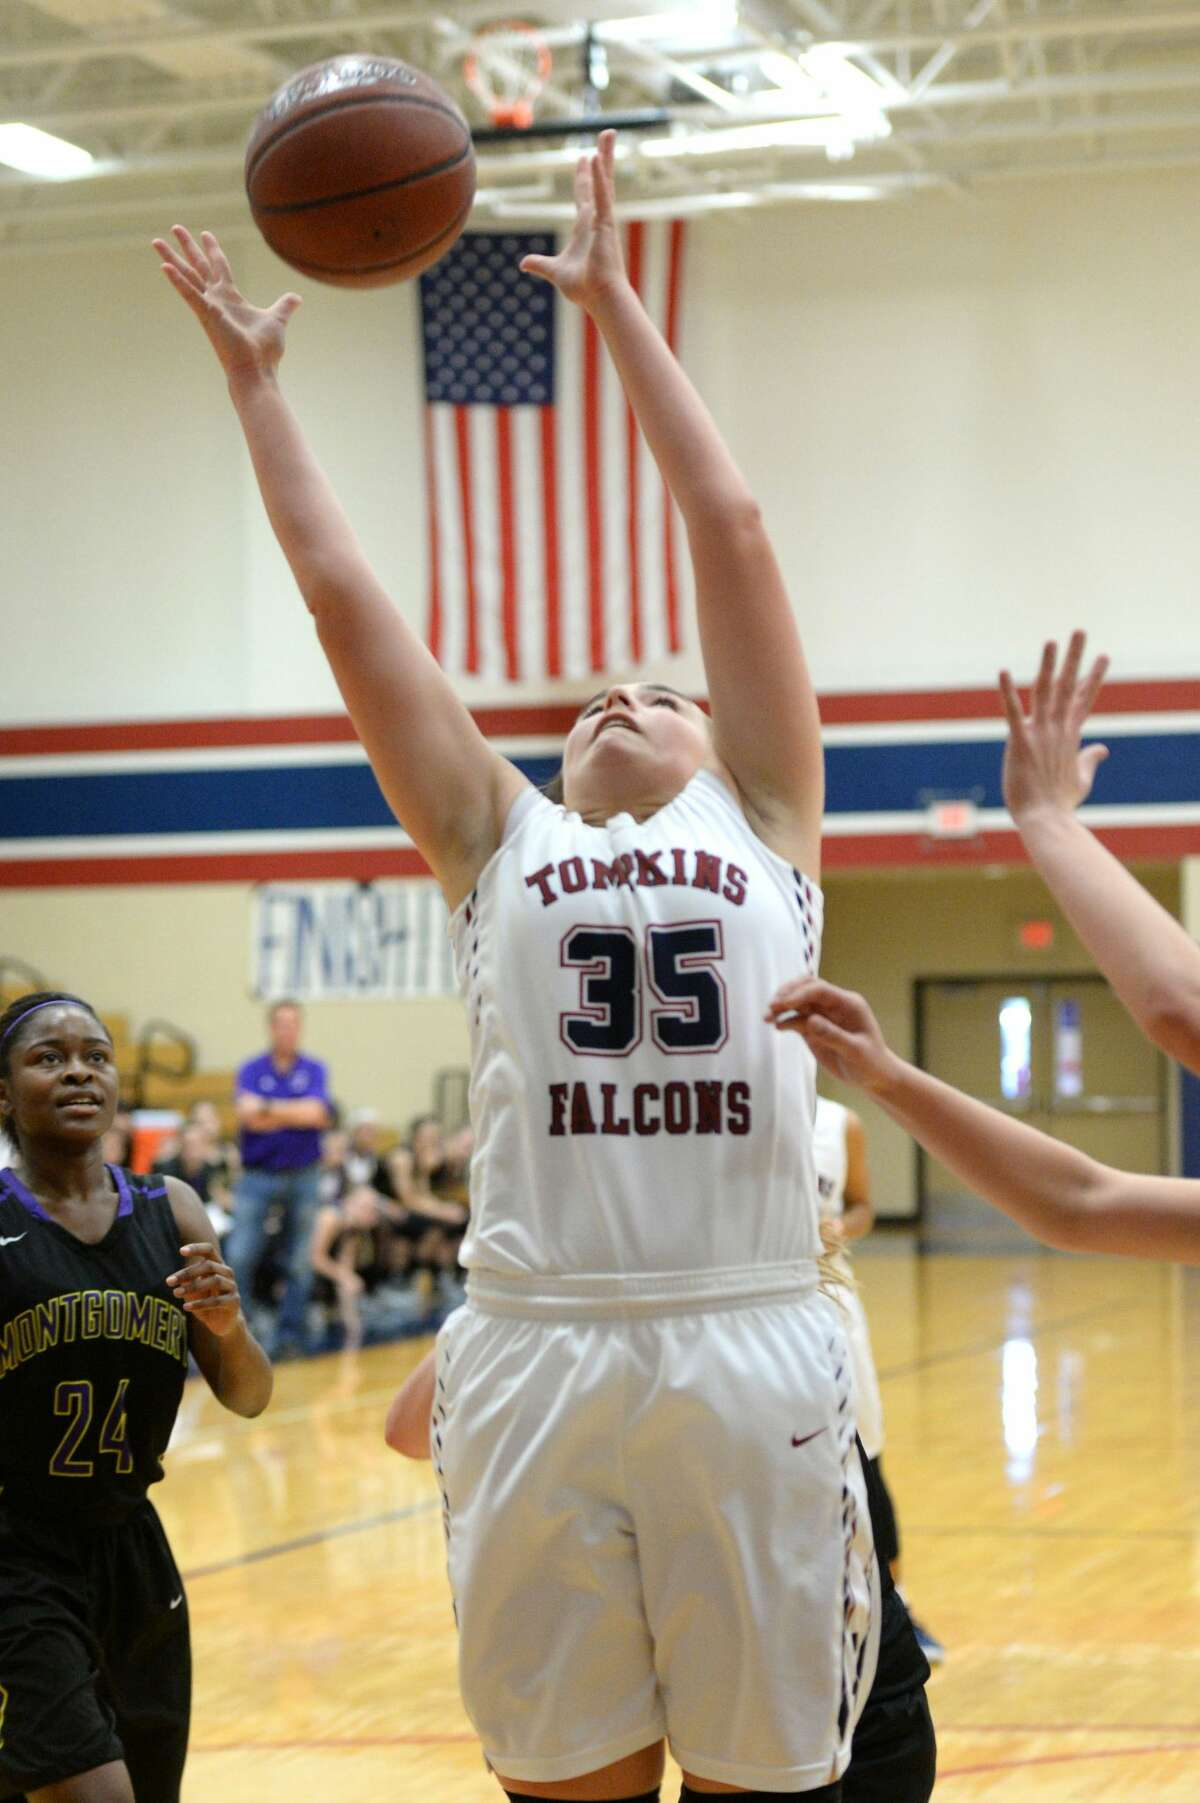 Erin Beaird (35) of Tompkins grabs a rebound during a first round game in the Phillips 66 Katy Classic between the Tompkins Falcons and the Montgomery Bears on Thursday November 30, 2017 at Tompkins HS, Katy, TX.